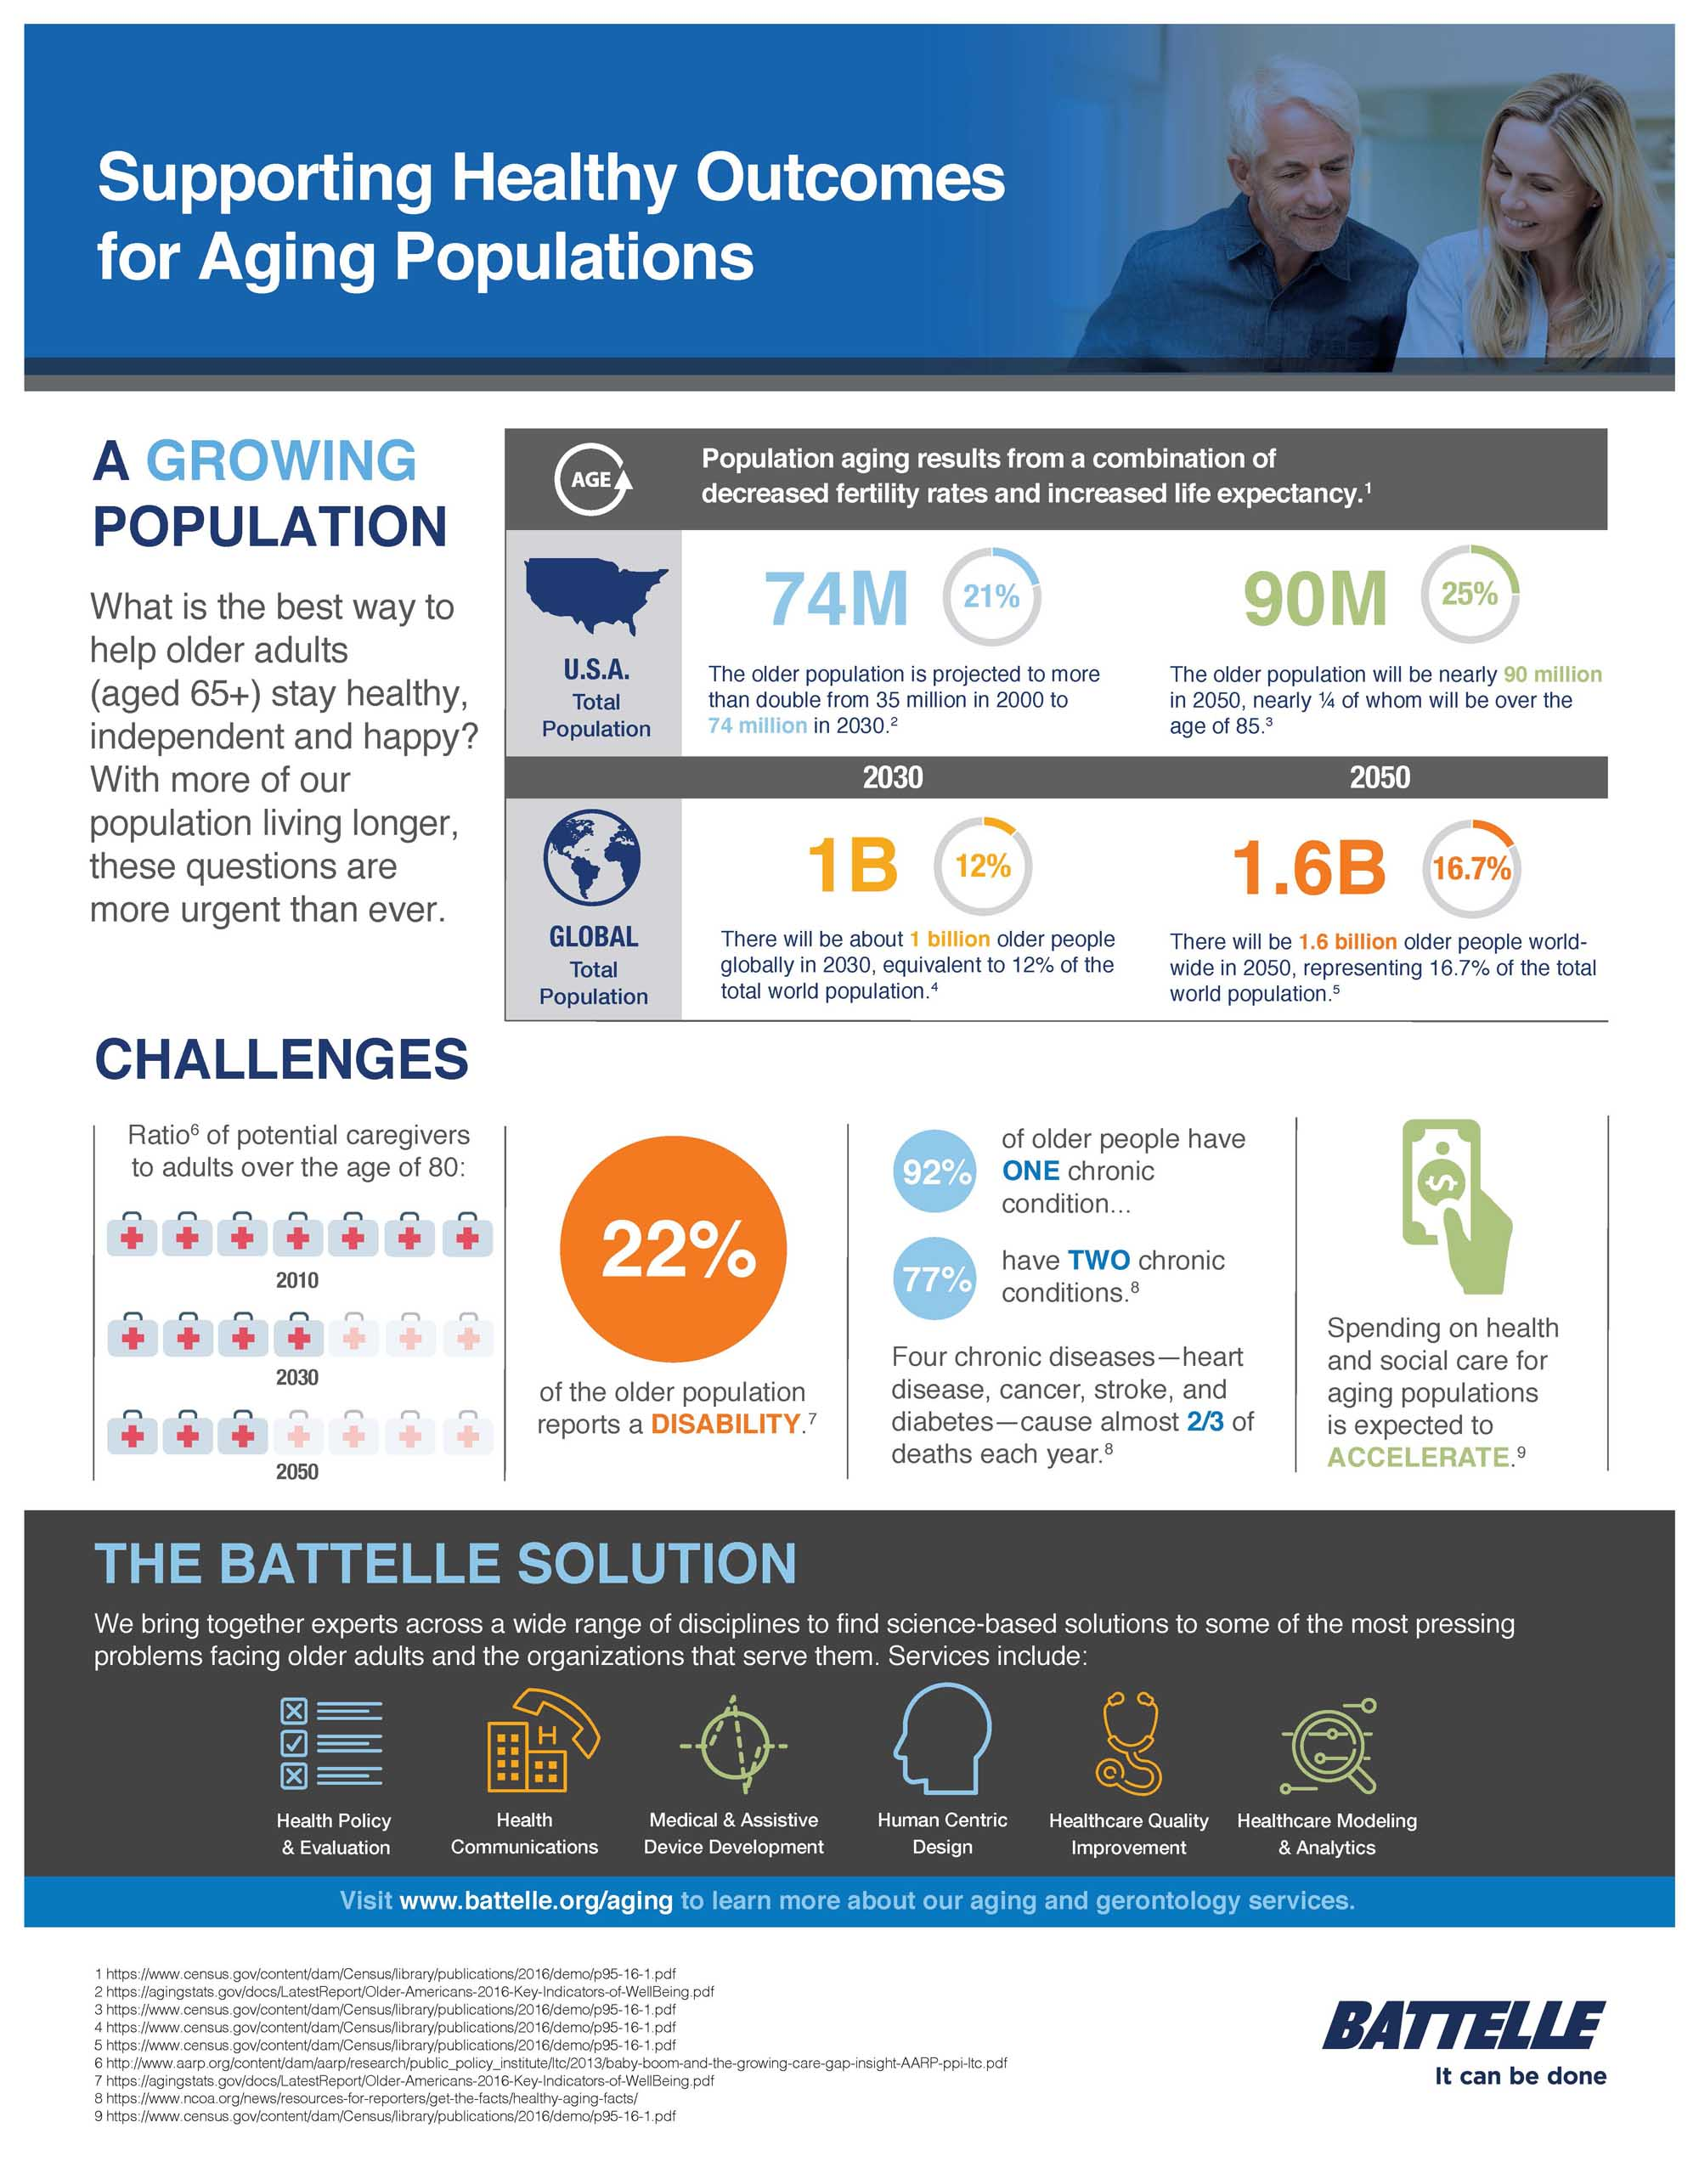 Infographic showing numbers about the aging population